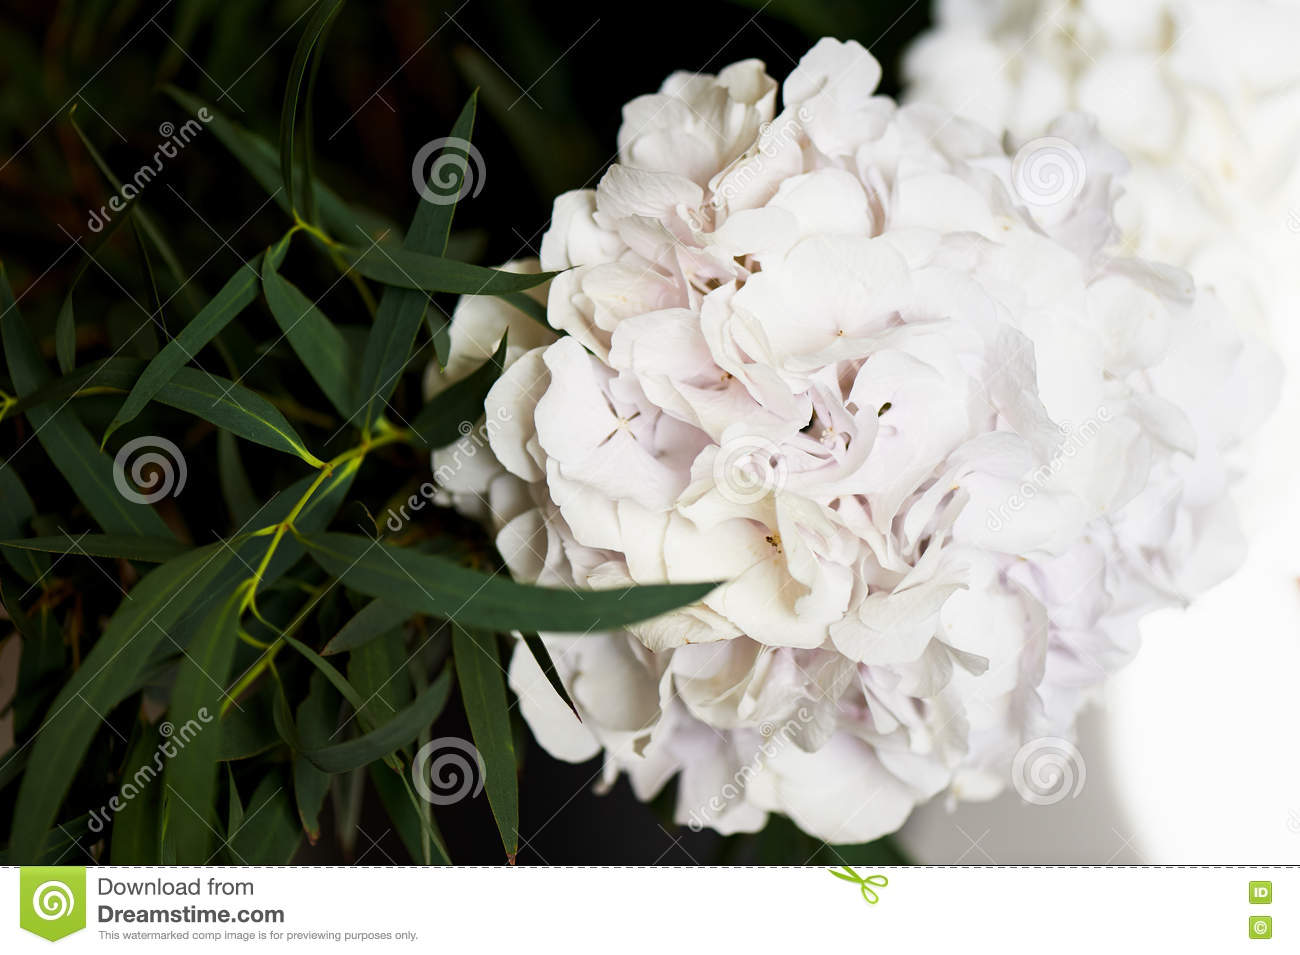 Hydrangea With One Bunch Of White Flowers And Big Green Leaves For A